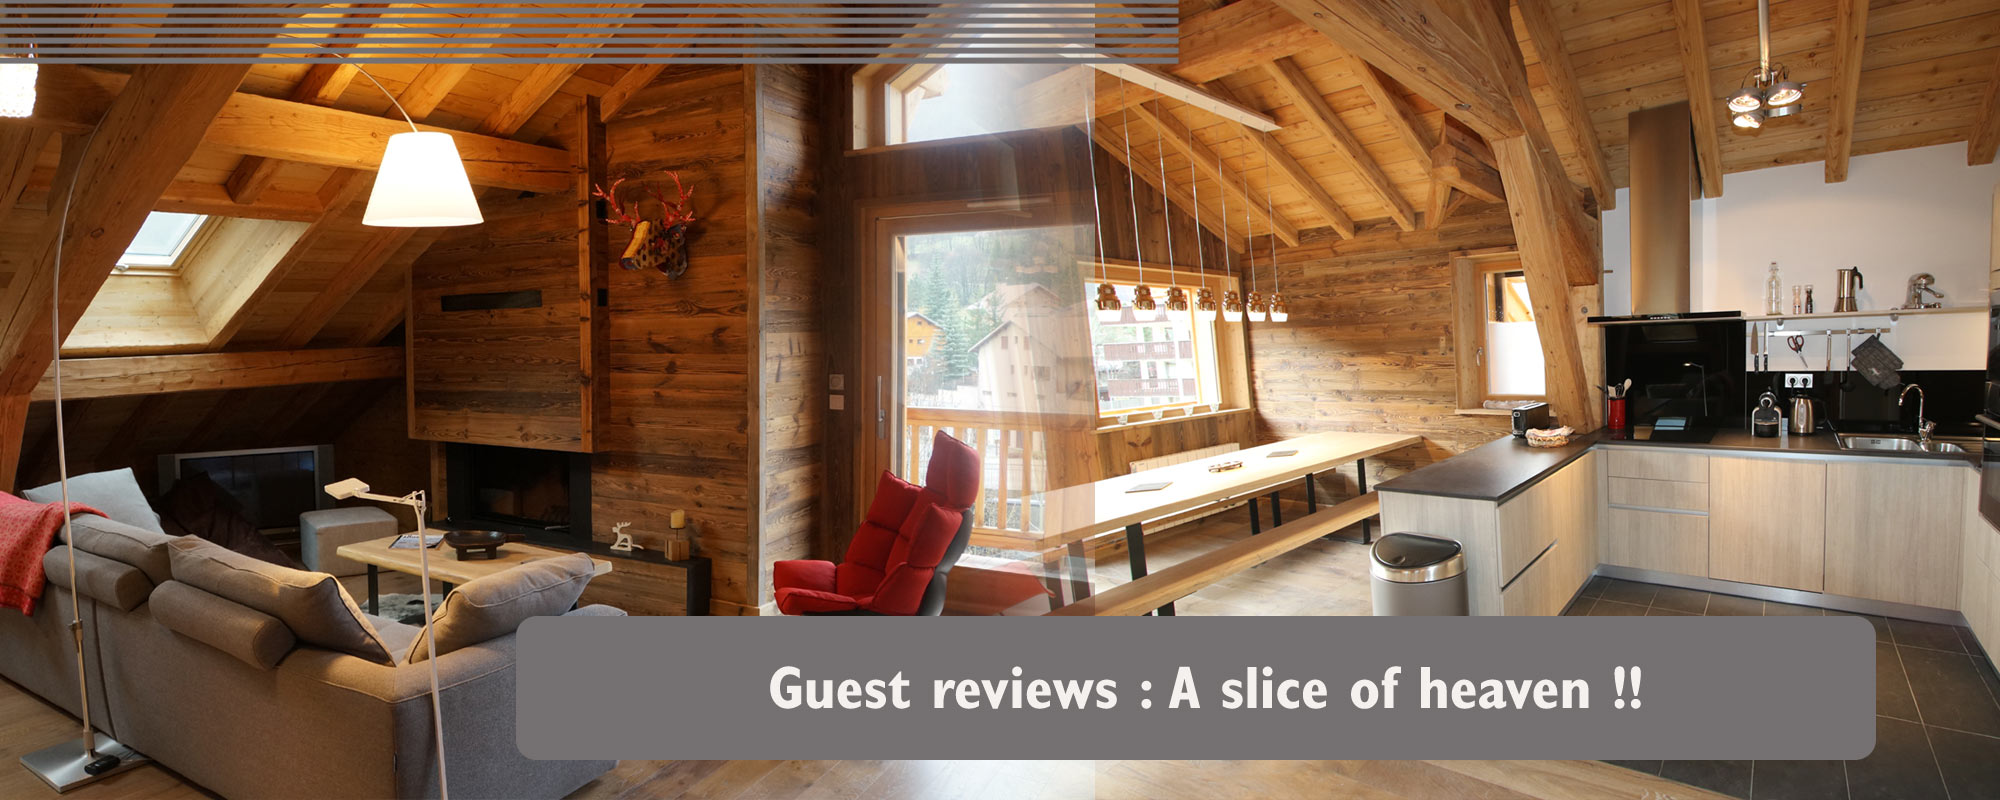 Chalet apartment guest reviews